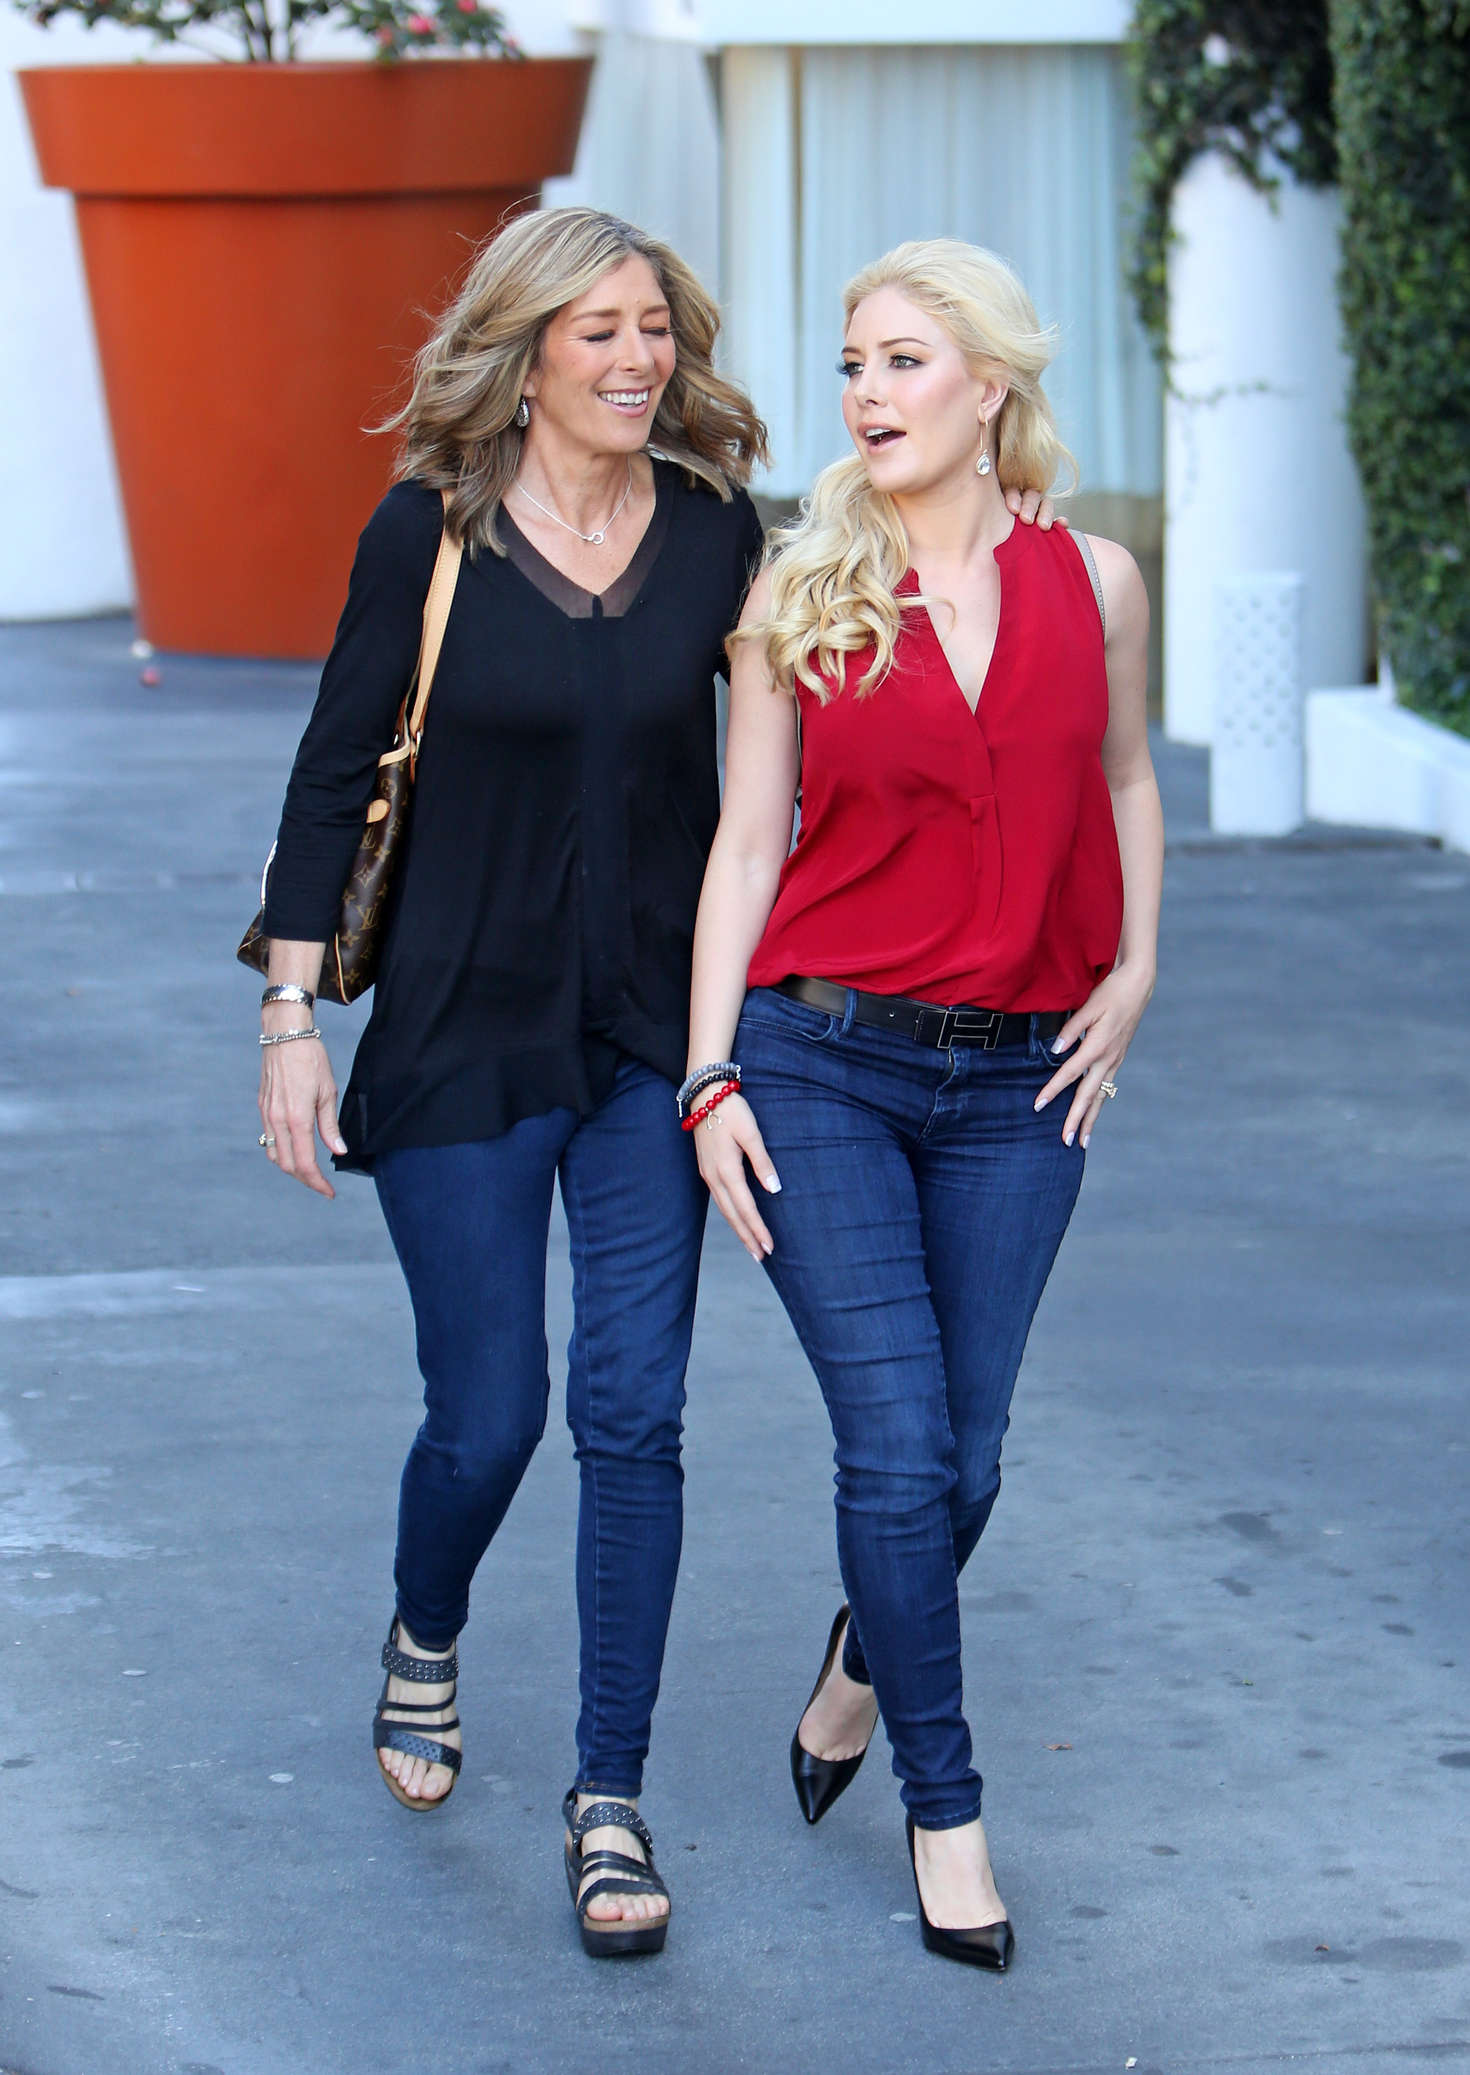 Heidi Montag Leave the Montage Hotel in Hollywood